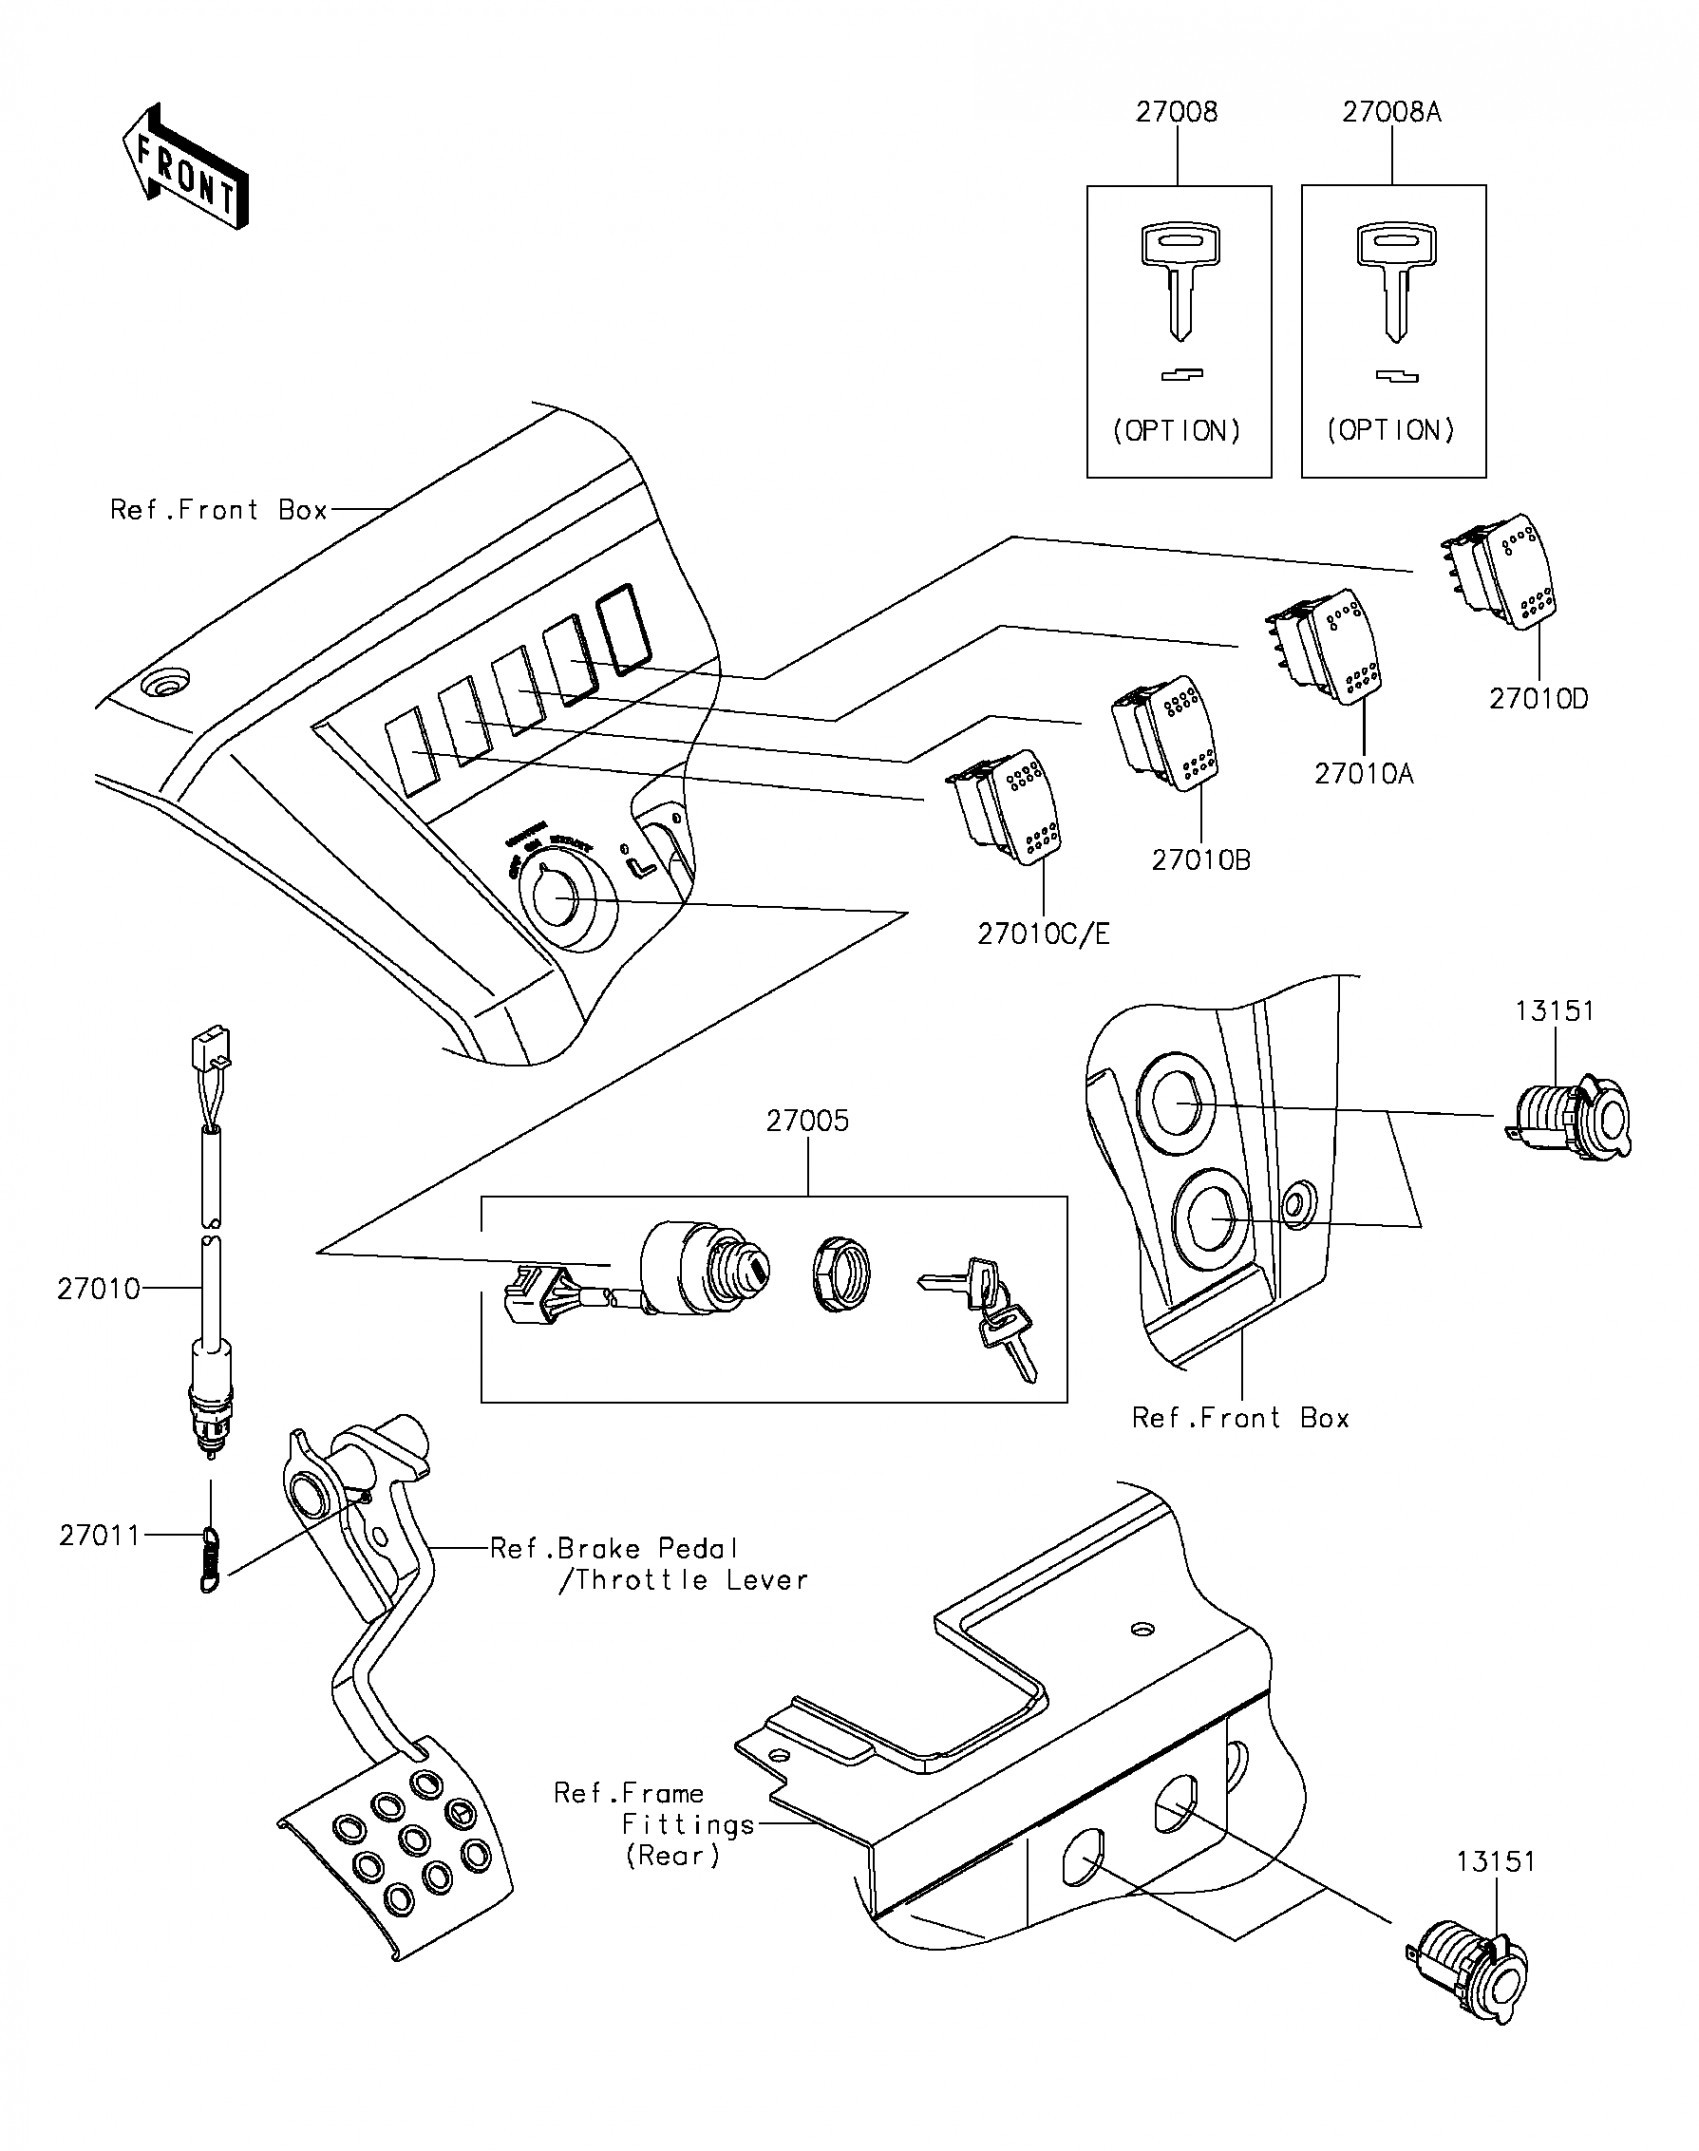 05 Toyota Sequoia Parts Diagram Wiring Diagrams Instructions 02 2004 2005 Corolla Ce 2007 Mirror